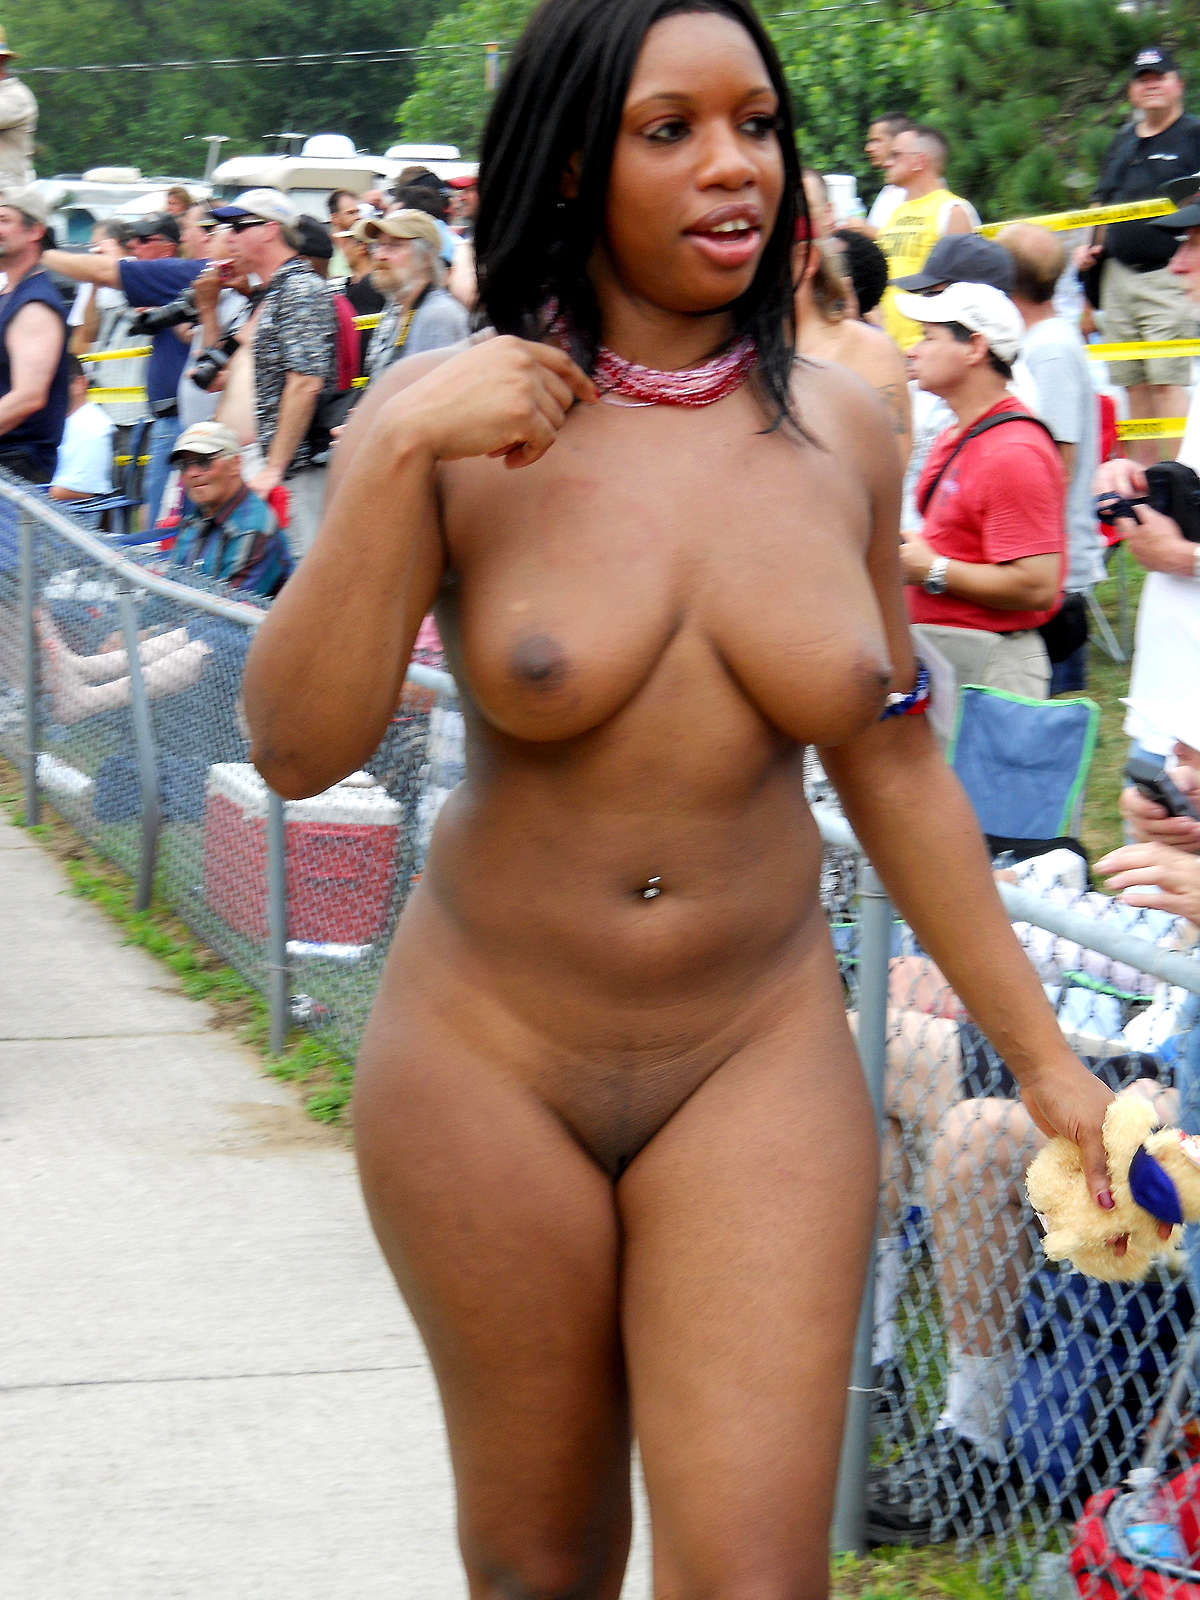 Remarkable, rather Black girl naked in parties pictures think, that